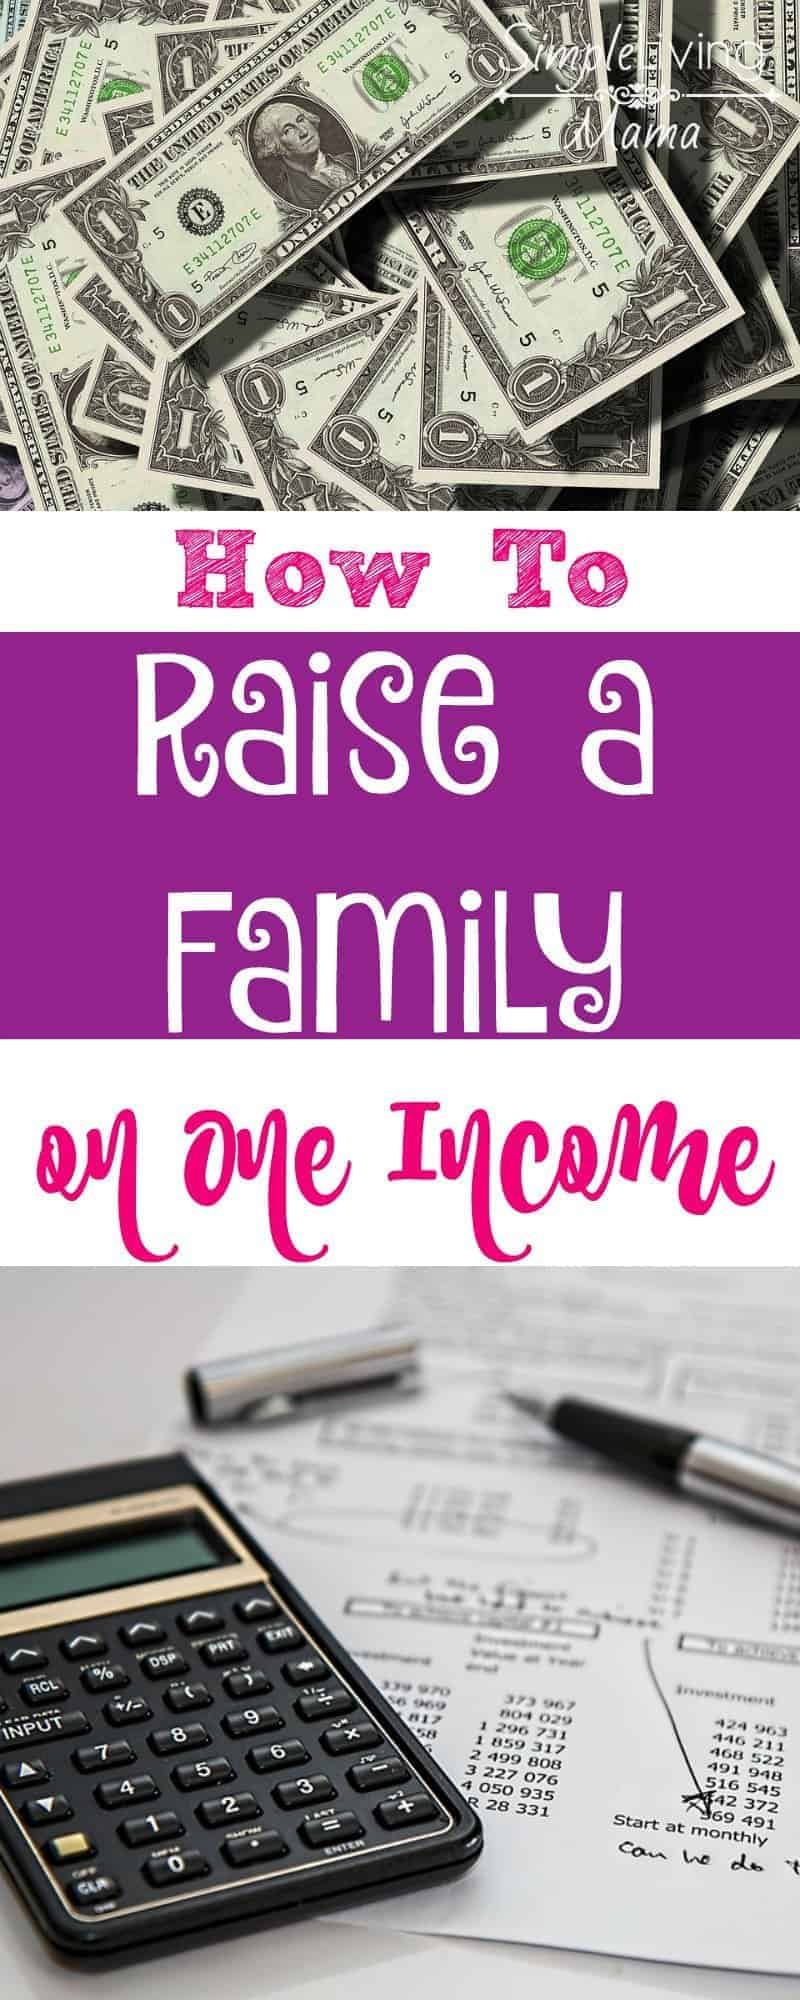 How to raise a family on one income